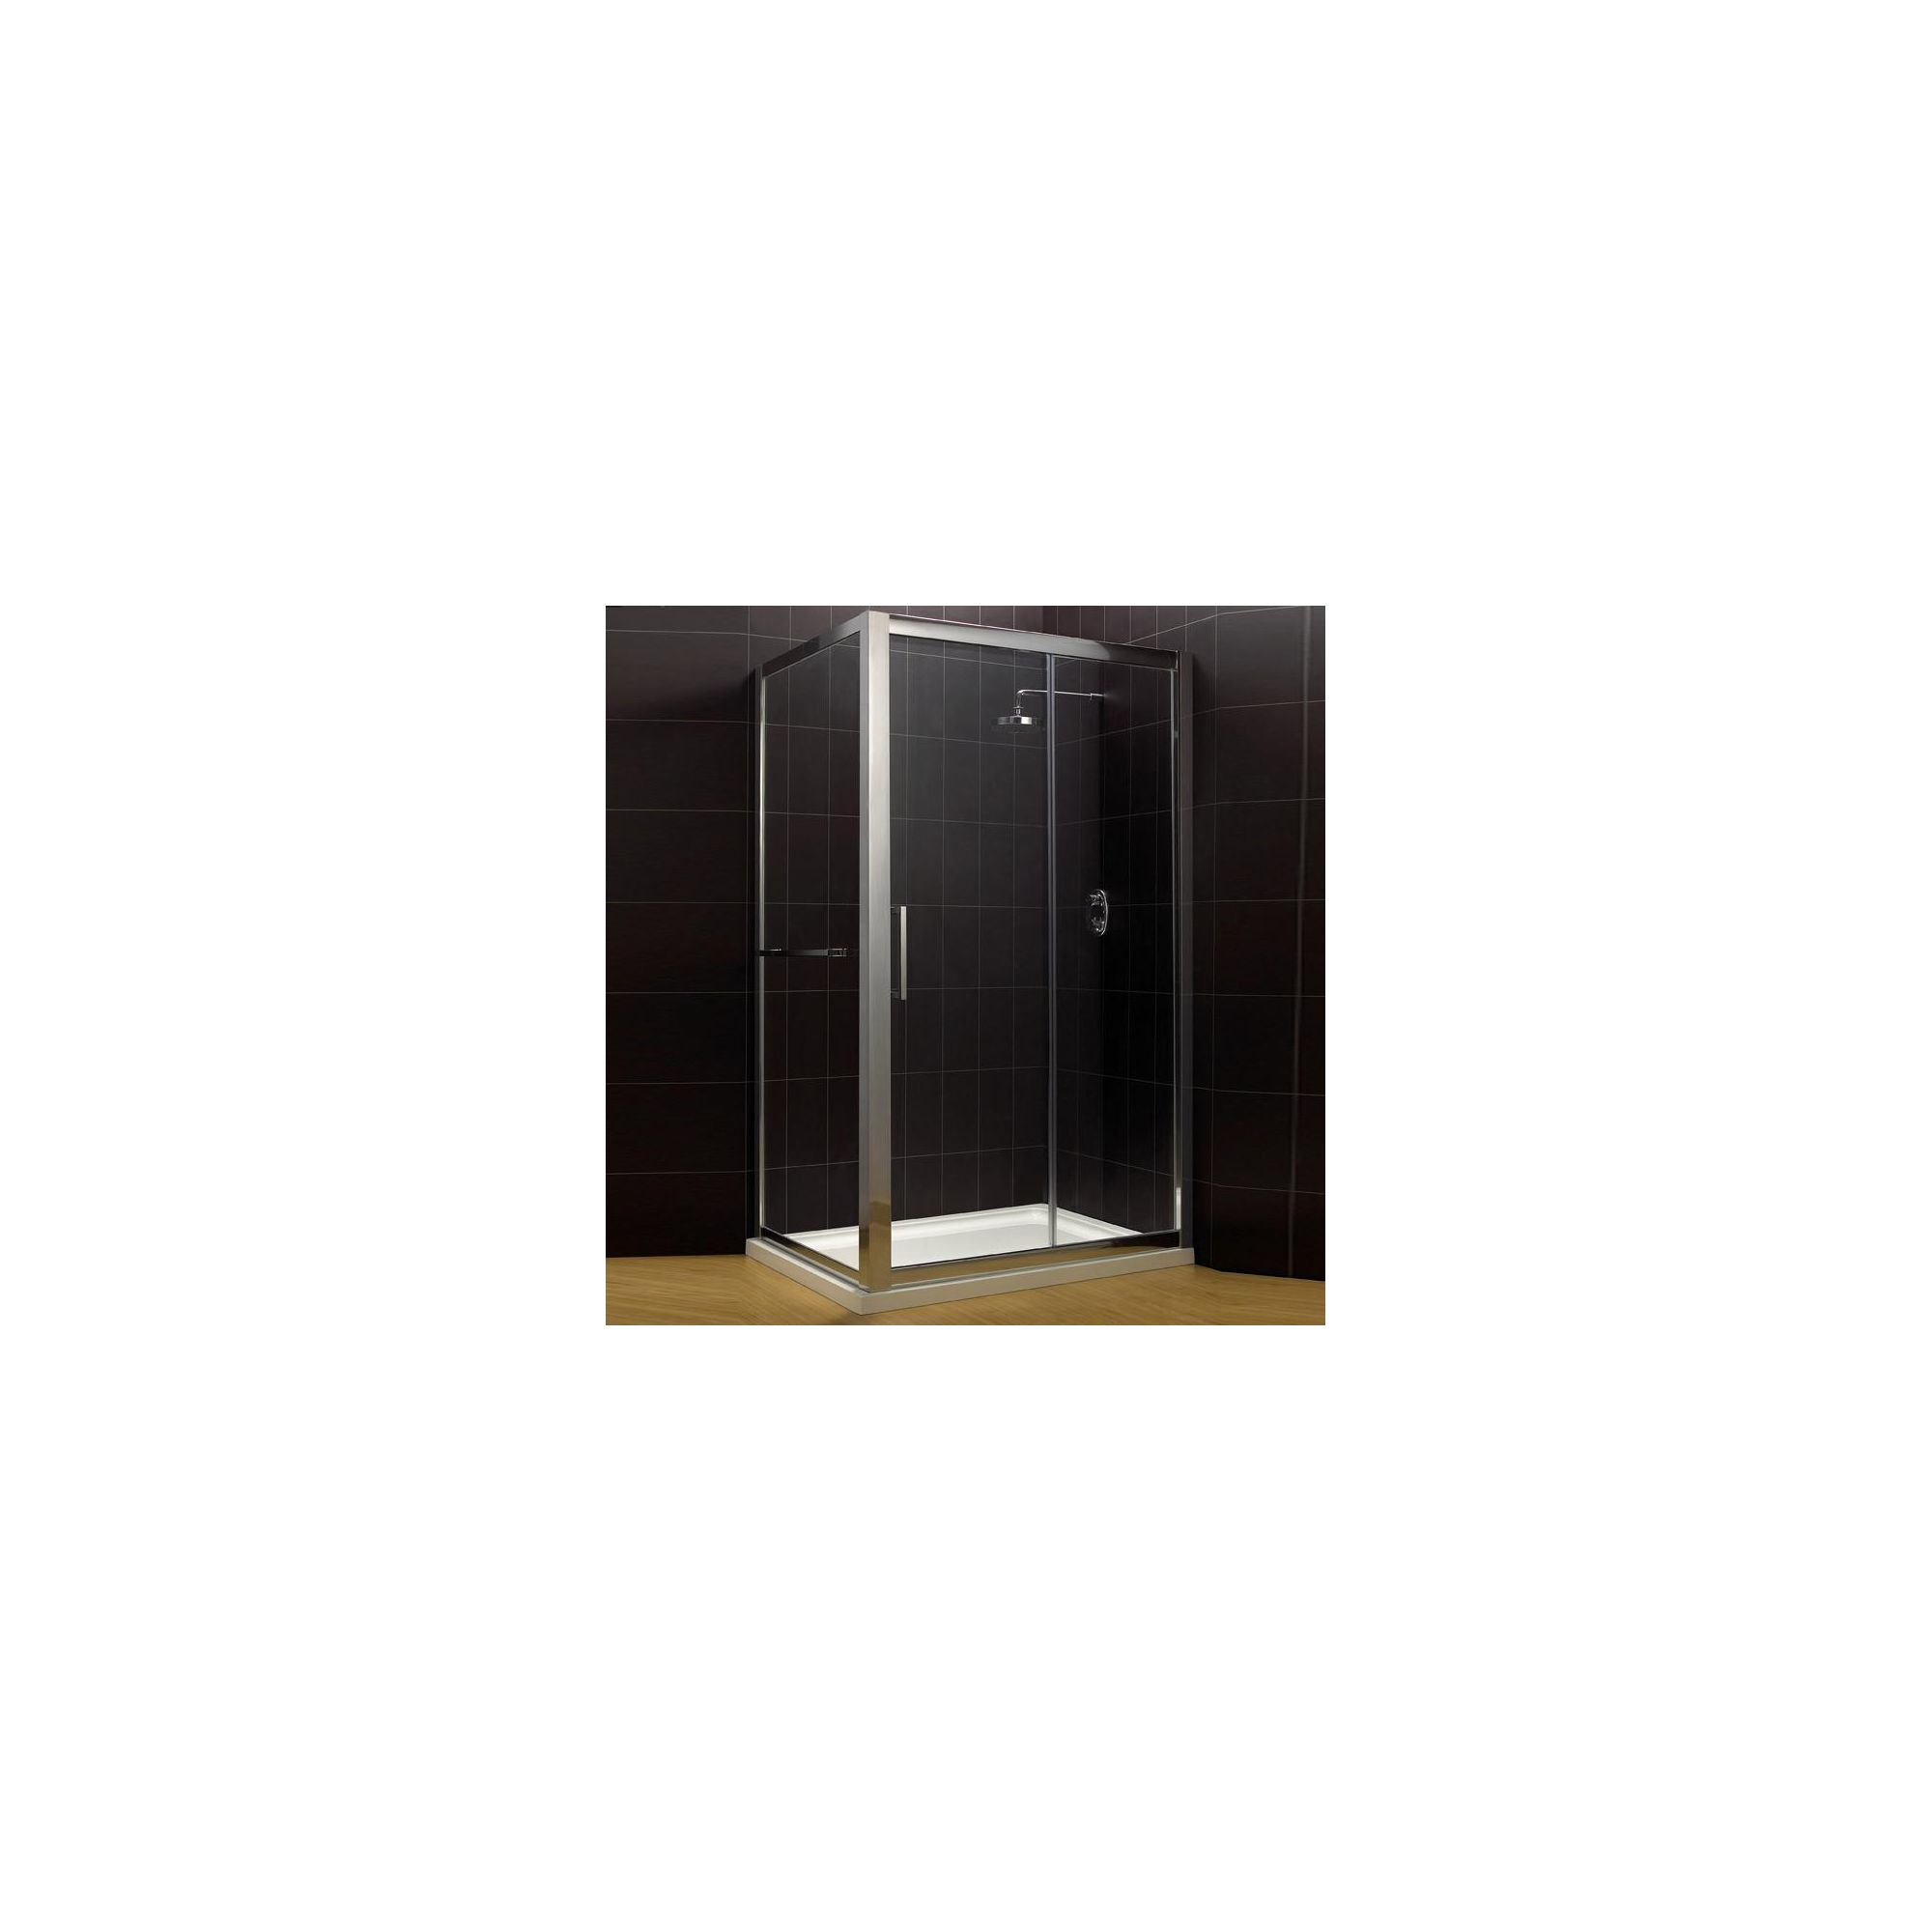 Duchy Supreme Silver Sliding Door Shower Enclosure with Towel Rail, 1100mm x 900mm, Standard Tray, 8mm Glass at Tesco Direct